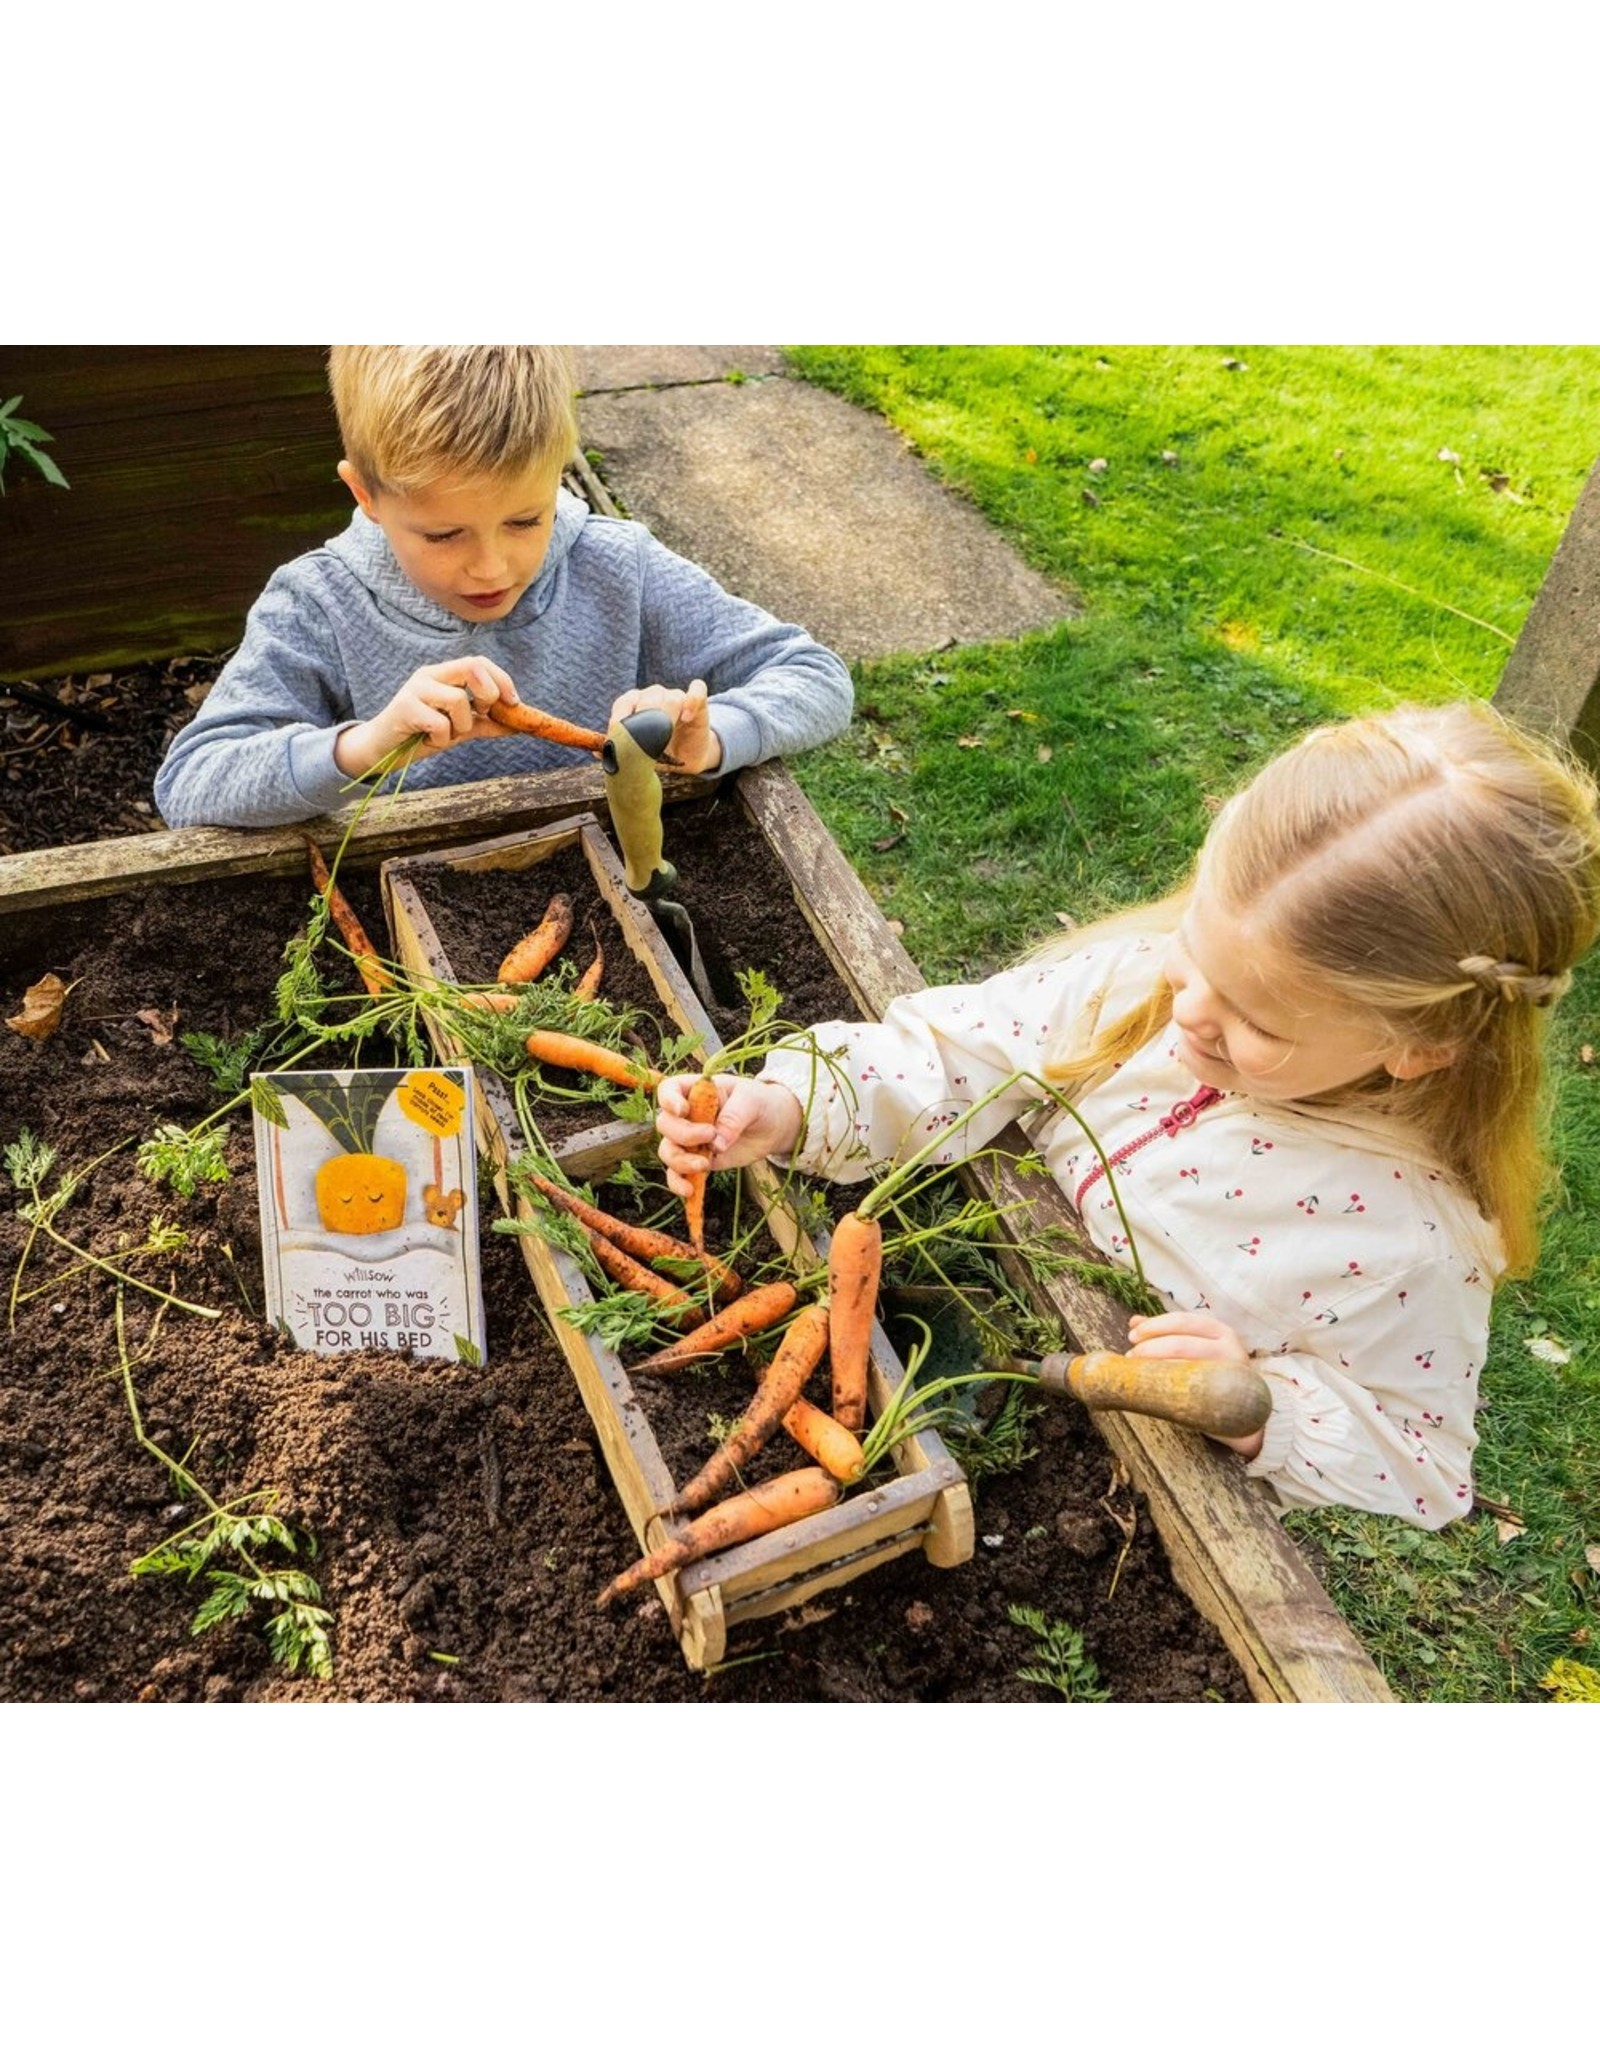 Plantable Children's Books- The Carrot Who Was Too Big For His Bed